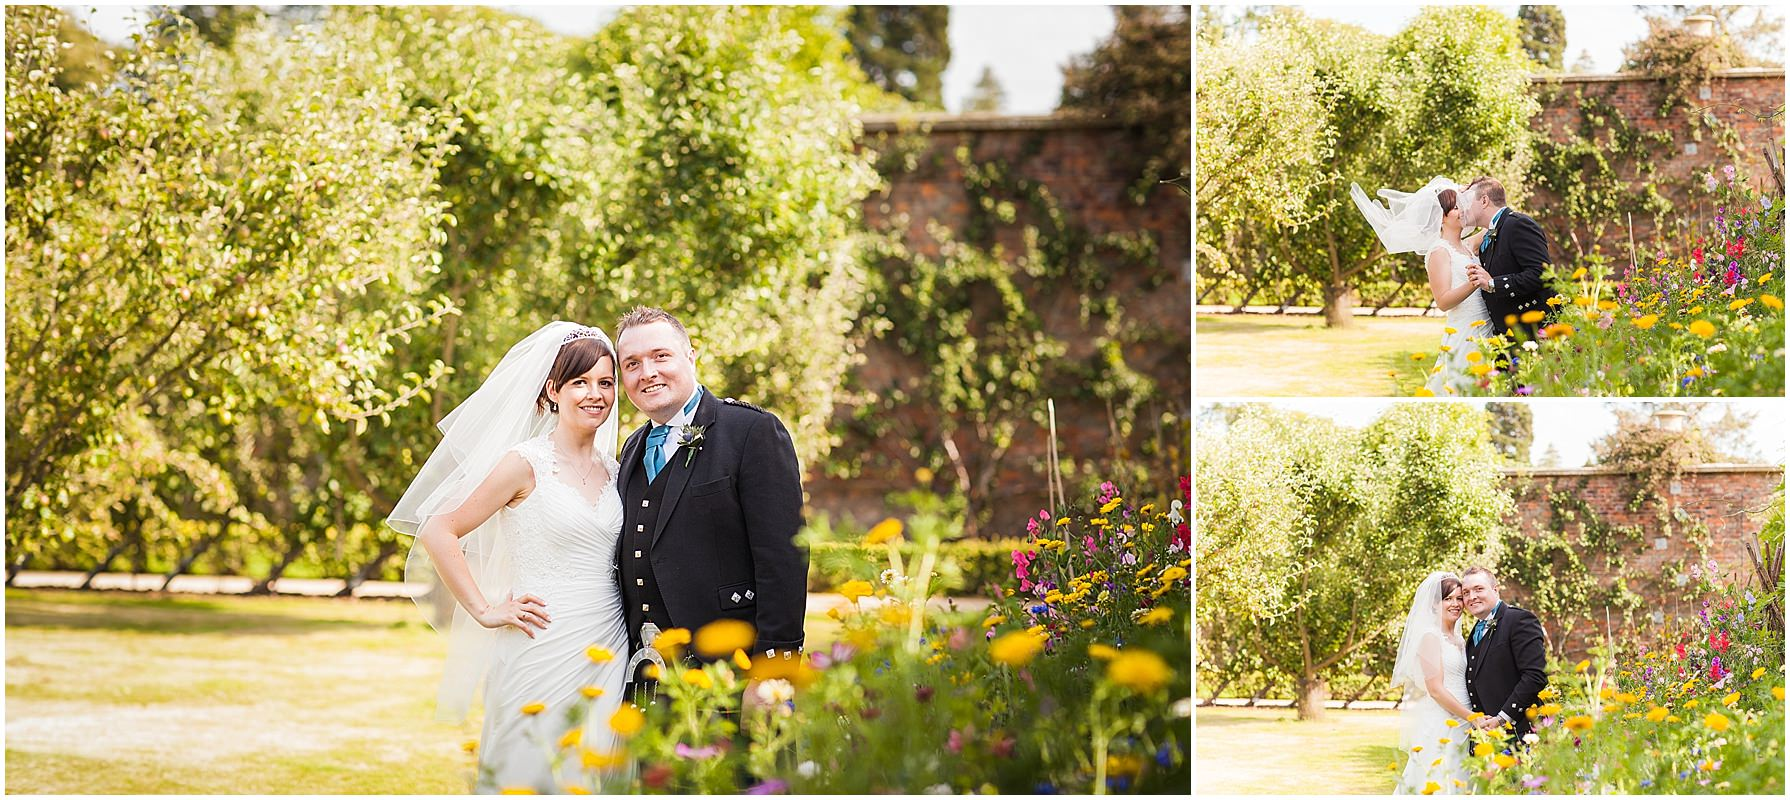 bride and groom portraits in Tatton gardens